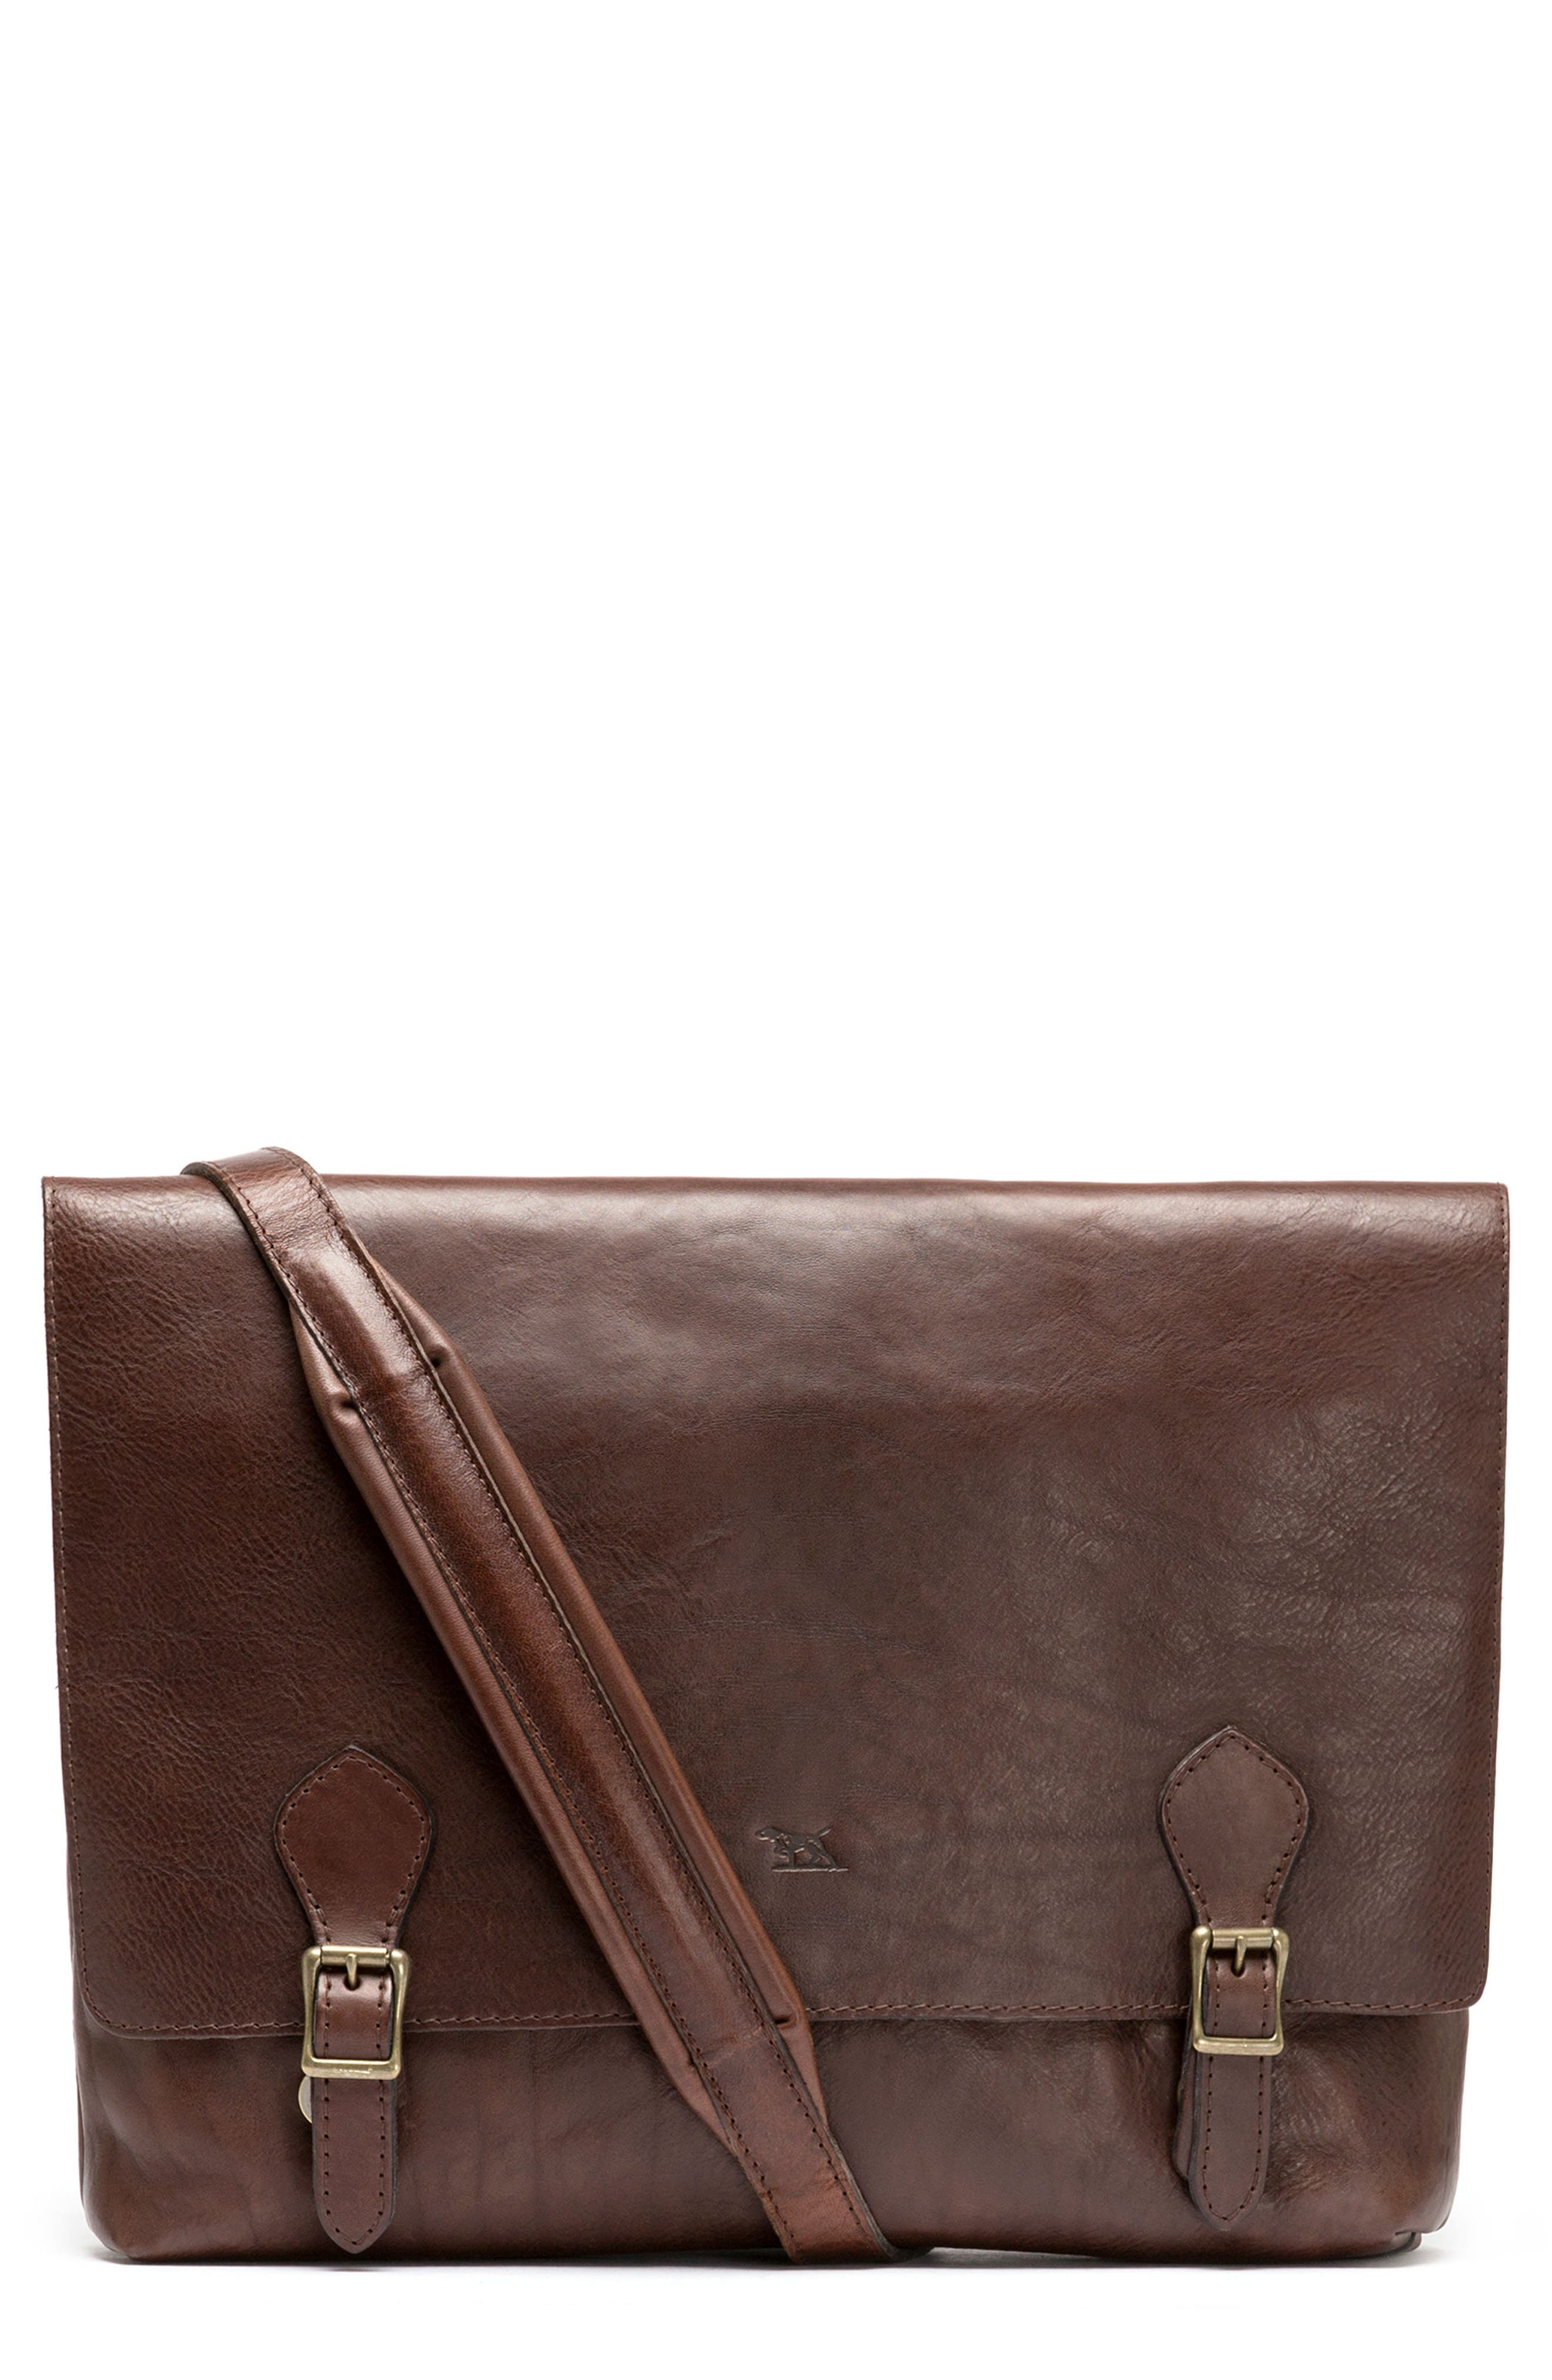 Woodstock Leather Satchel,                         Main,                         color, Cocoa